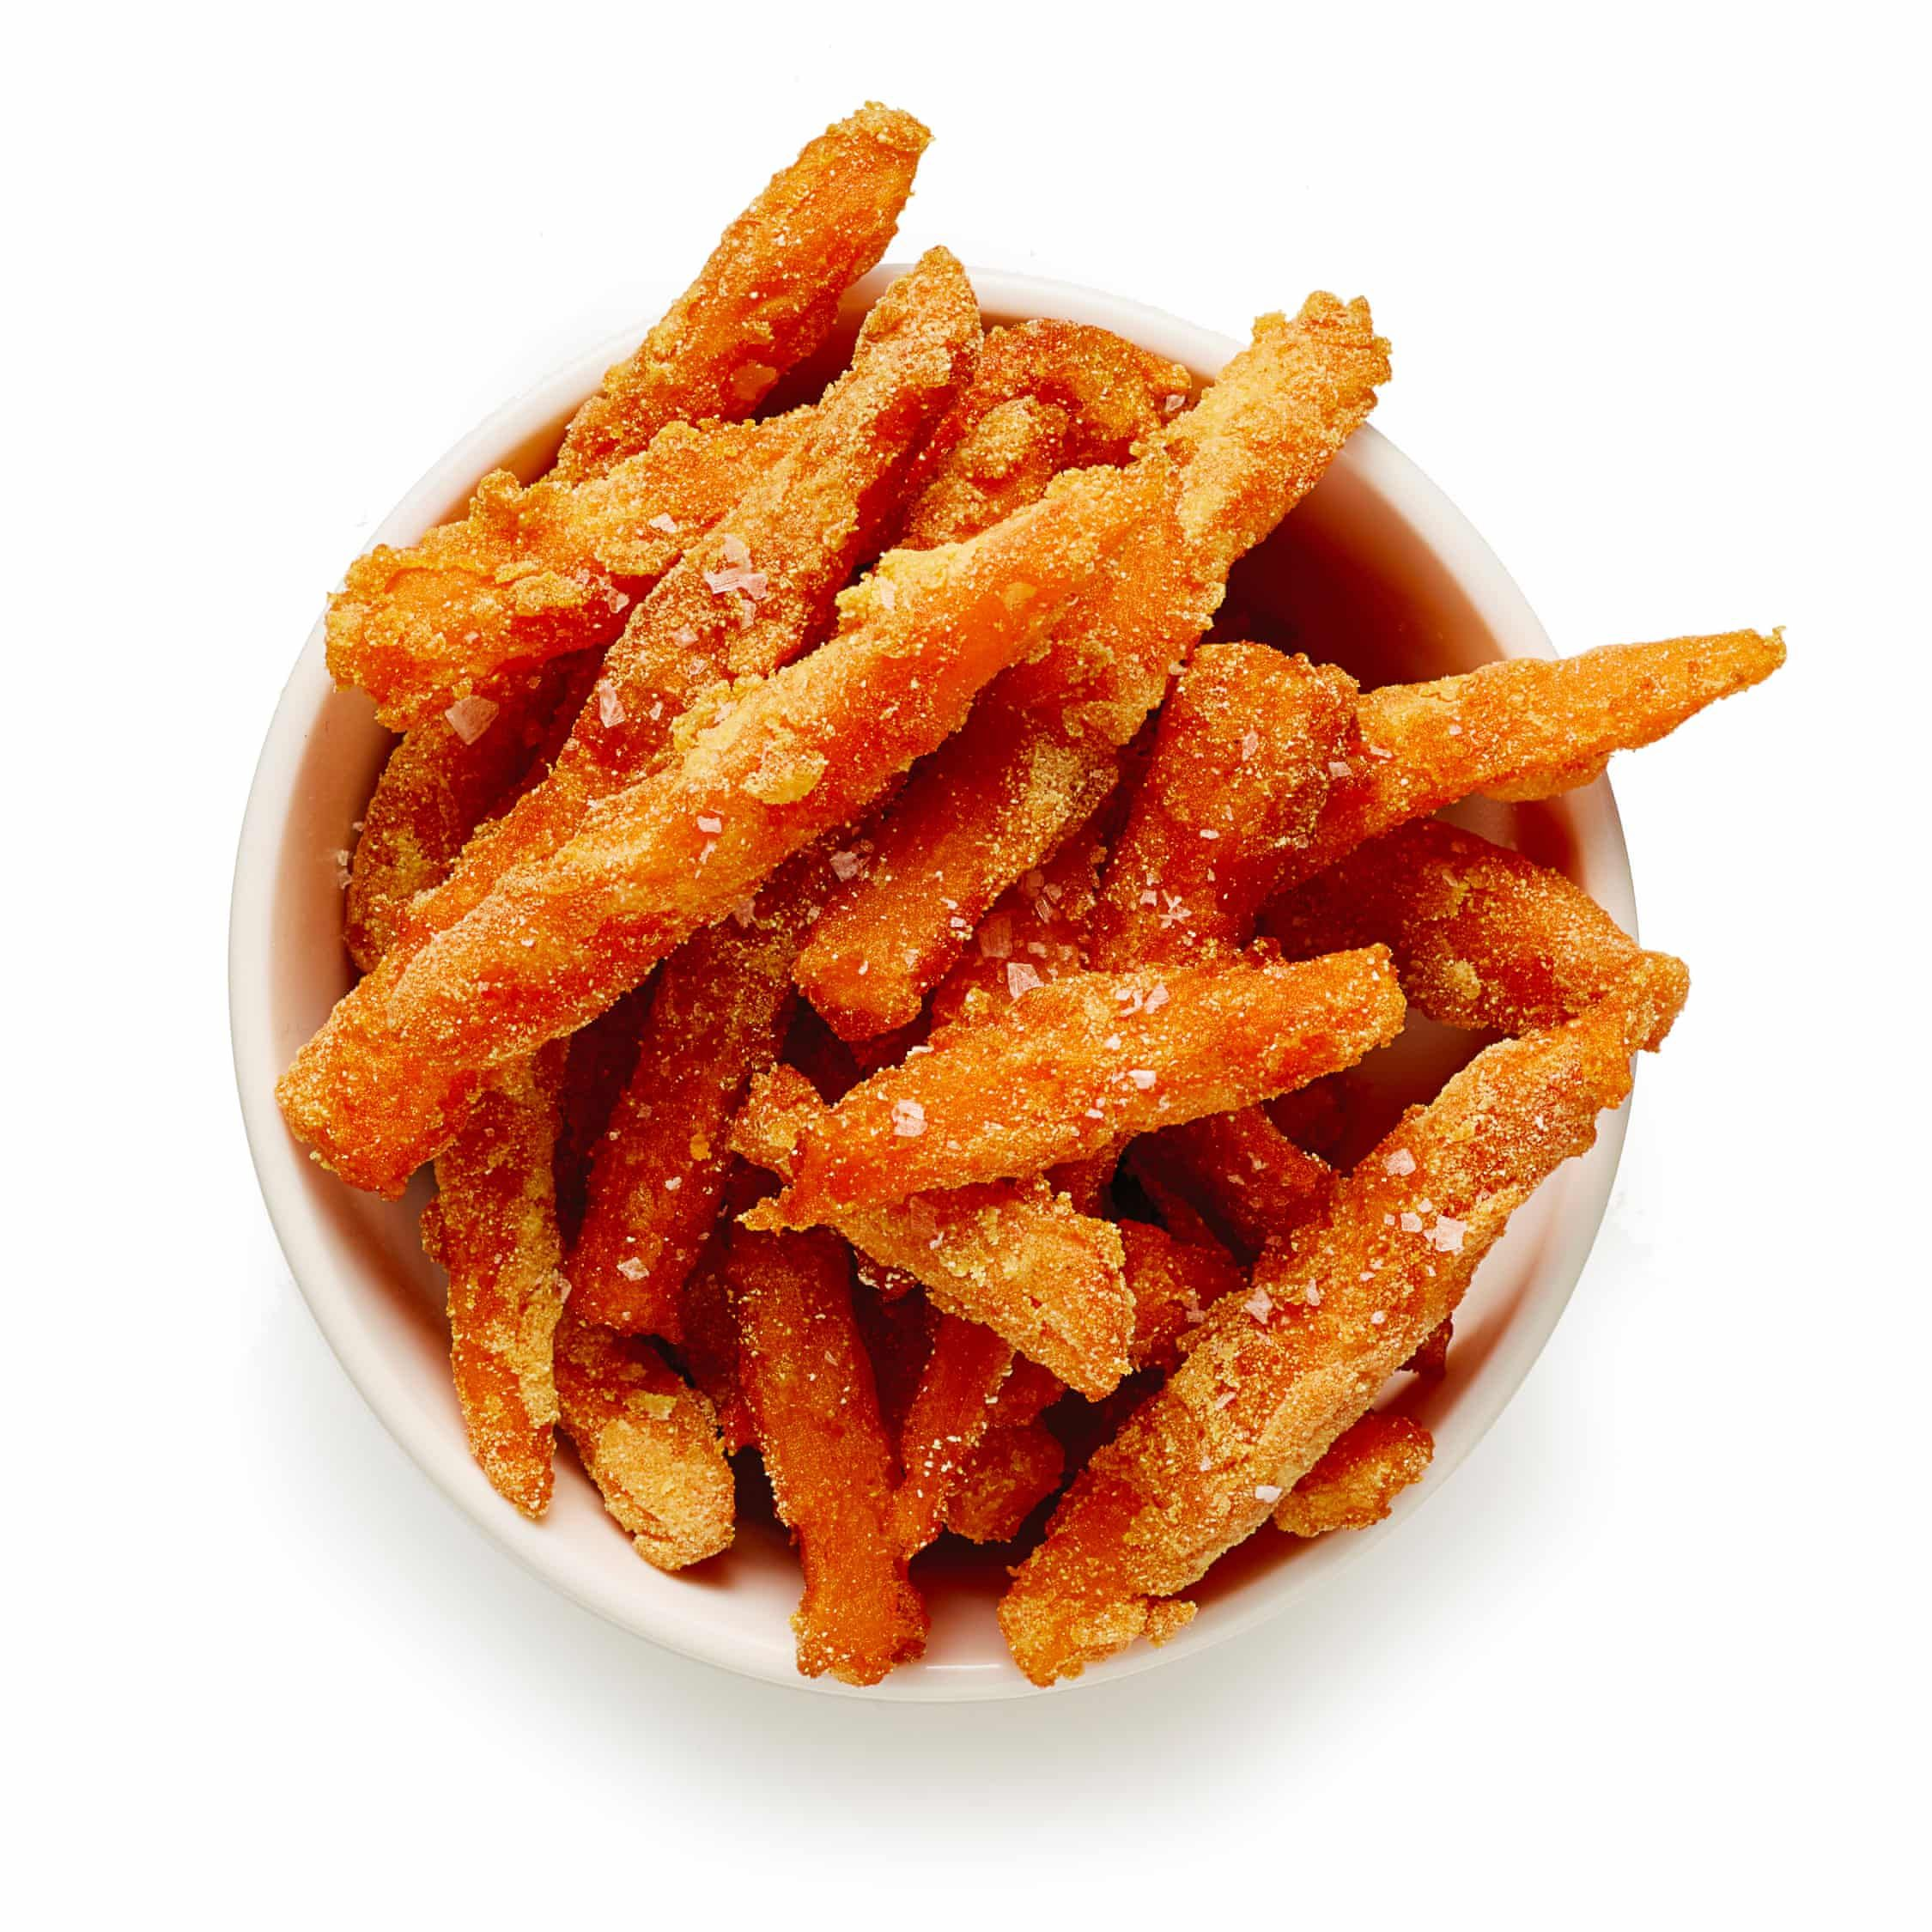 Felicity Cloakes Perfect Sweet Potato Fries Recipe